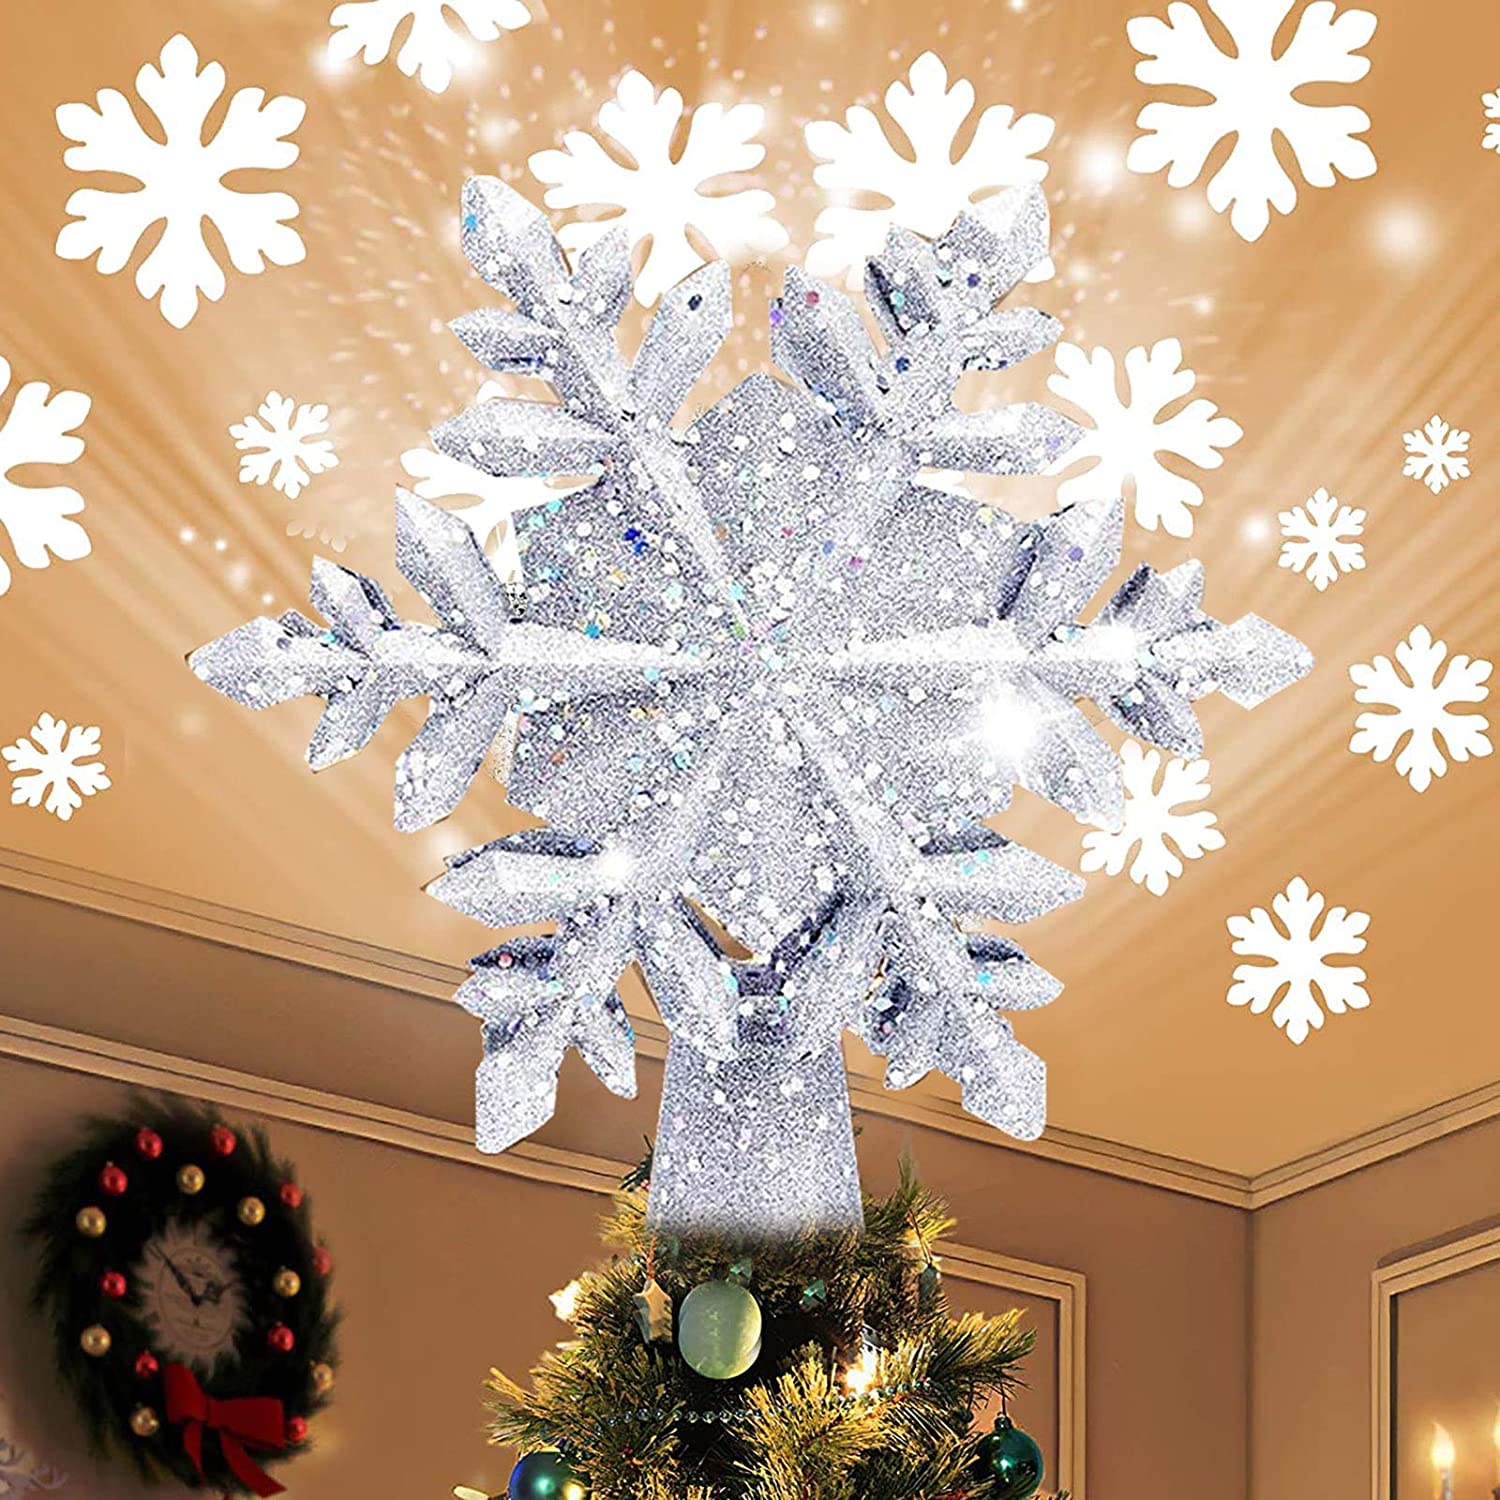 Emopeak Christmas Tree Topper Lighted White with Ranking TOP7 Proje Snowflake El Paso Mall